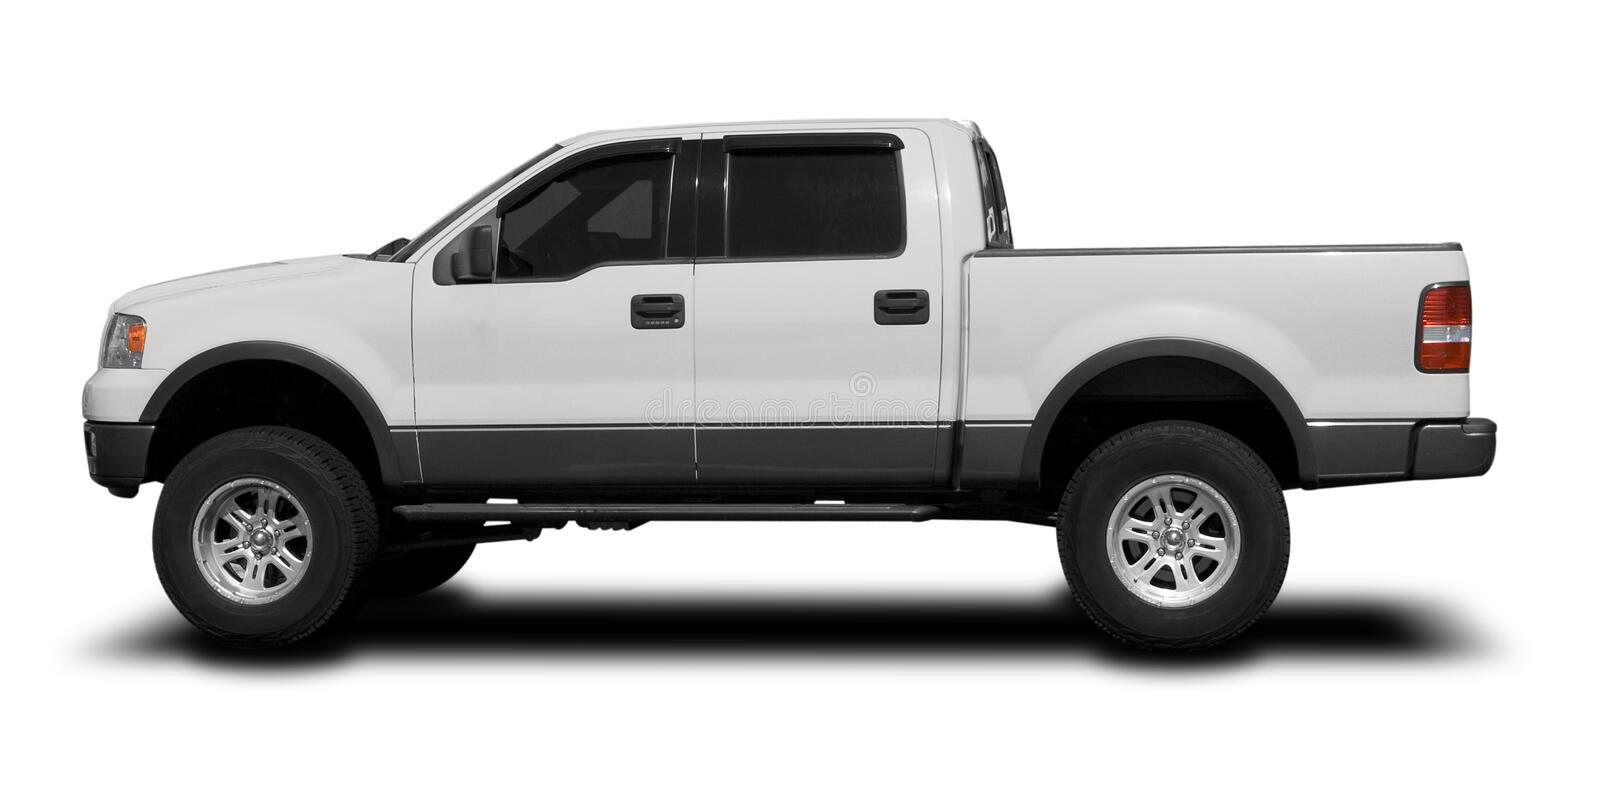 Pick Up Truck royalty free stock photos